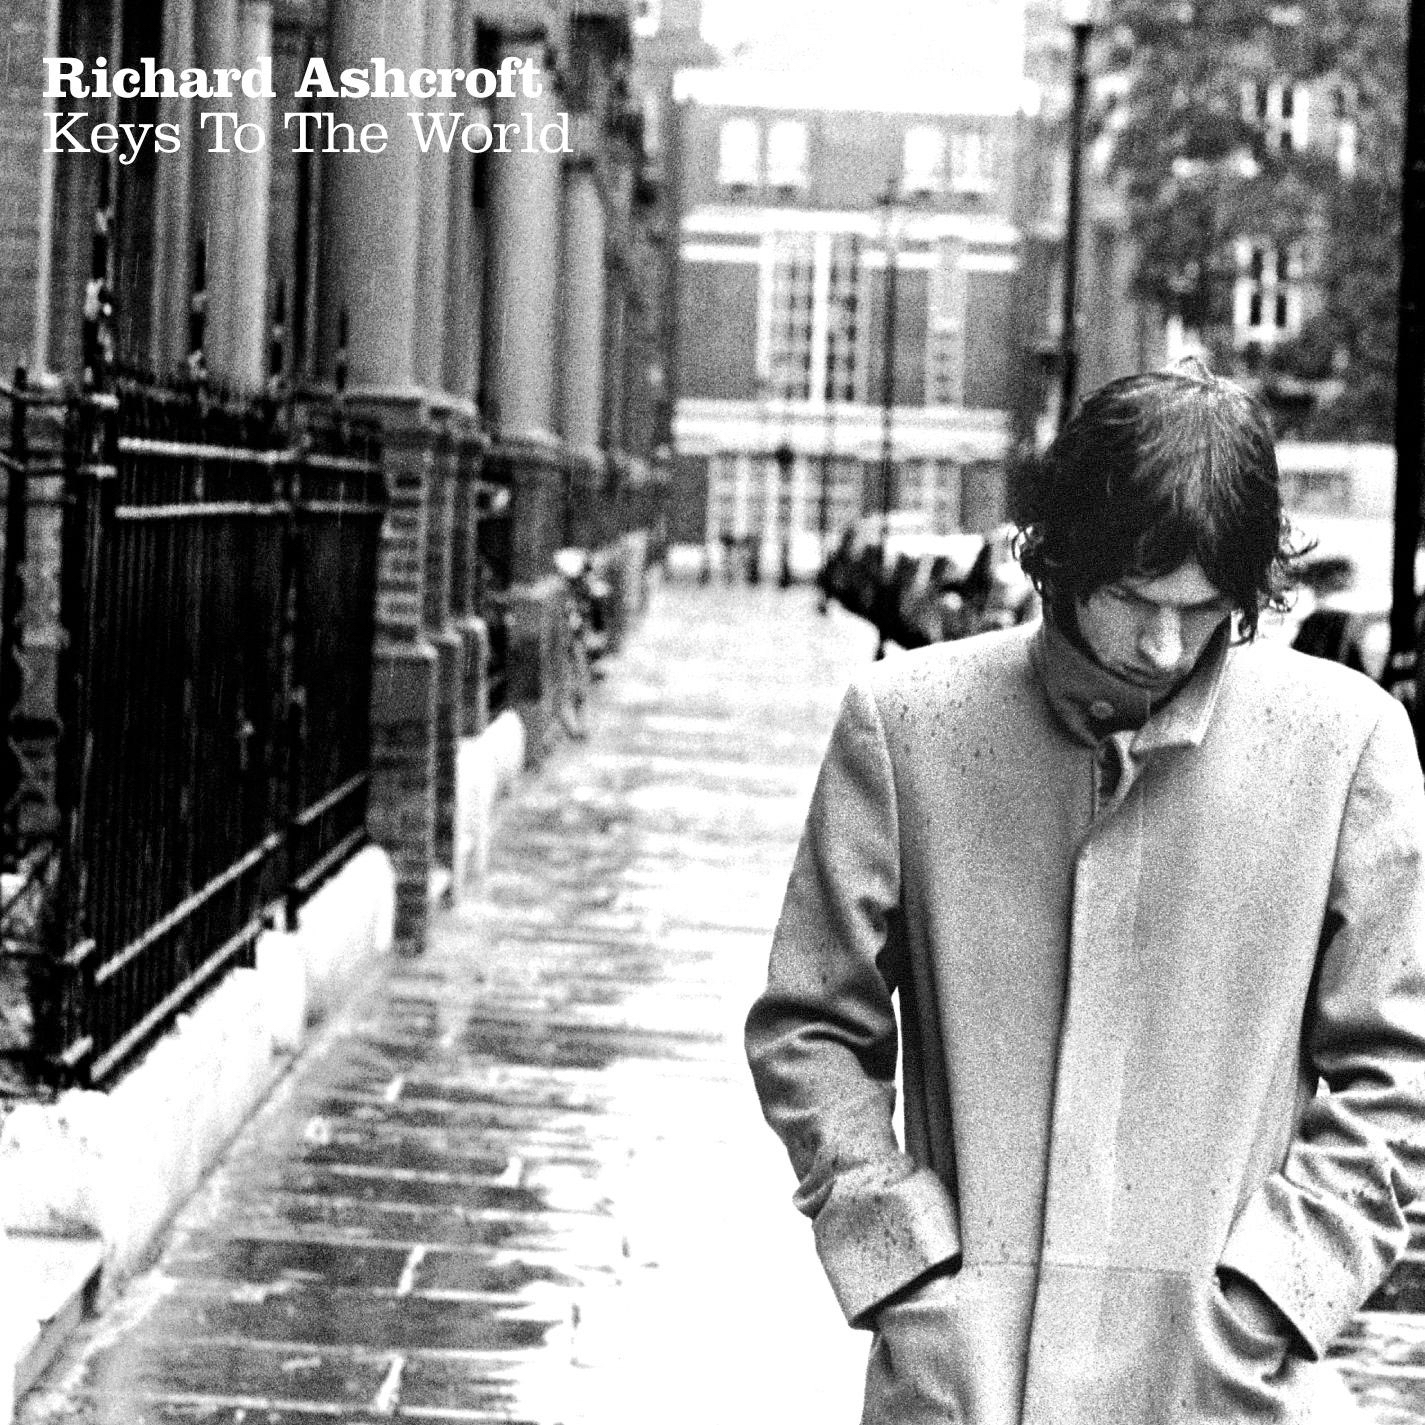 Richard Ashcroft, Keys to the World